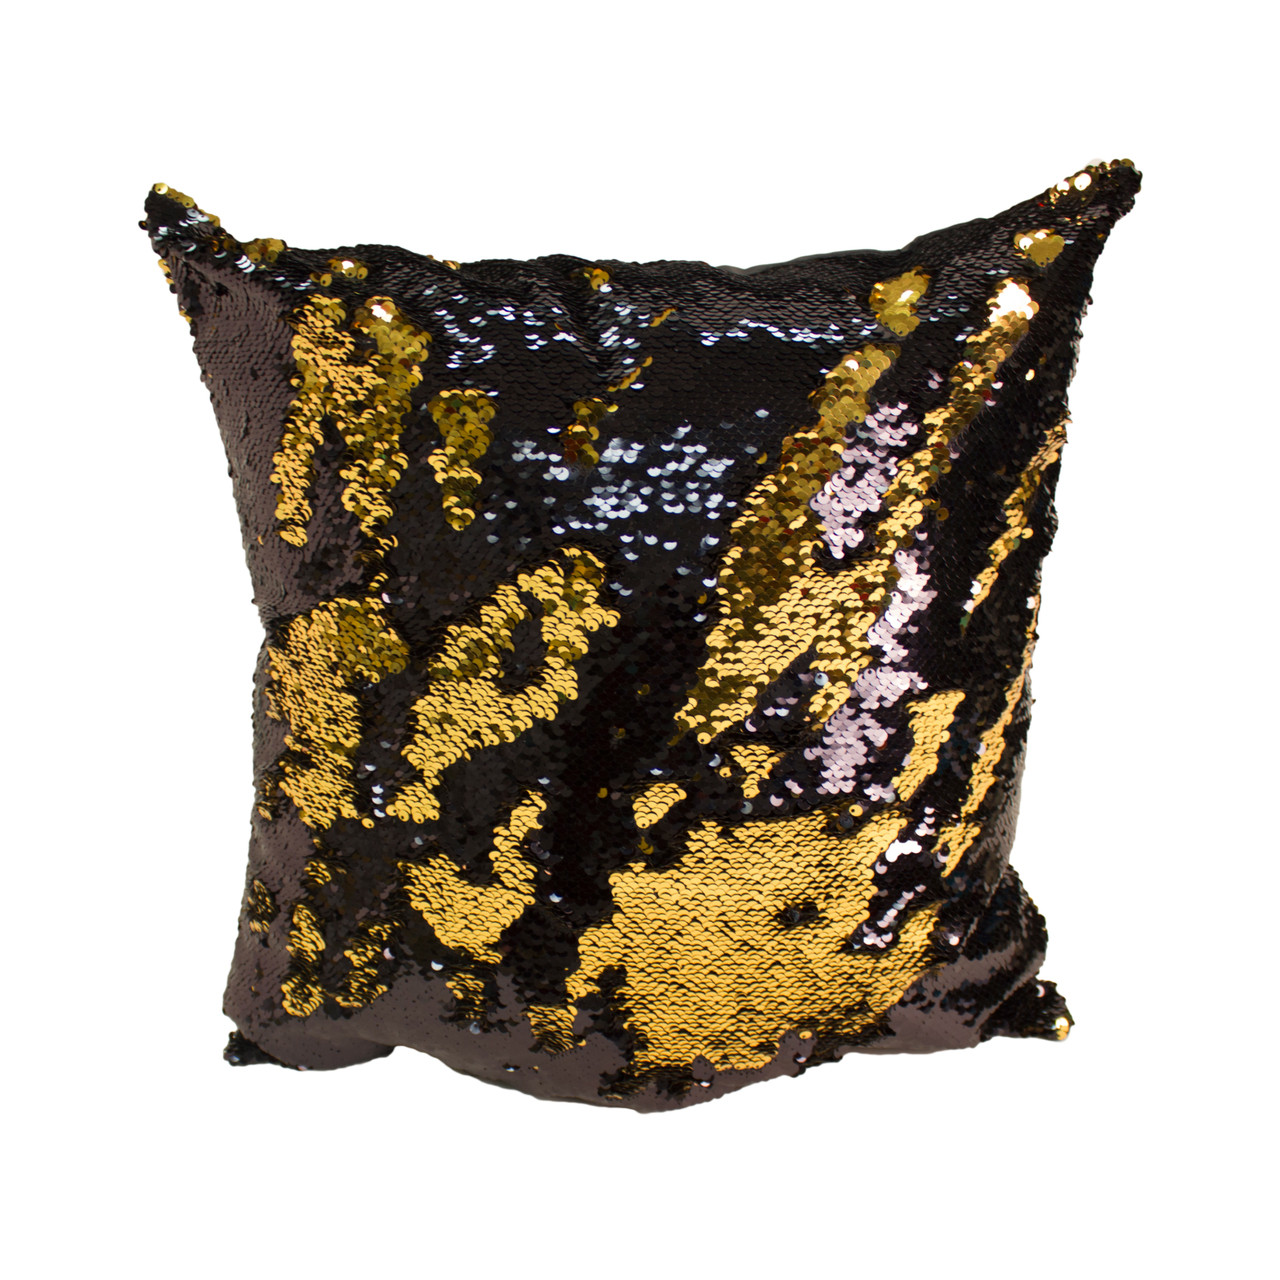 Decorative Sequin Throw Pillow 20x20 Inch, Comfortable Fill For ...